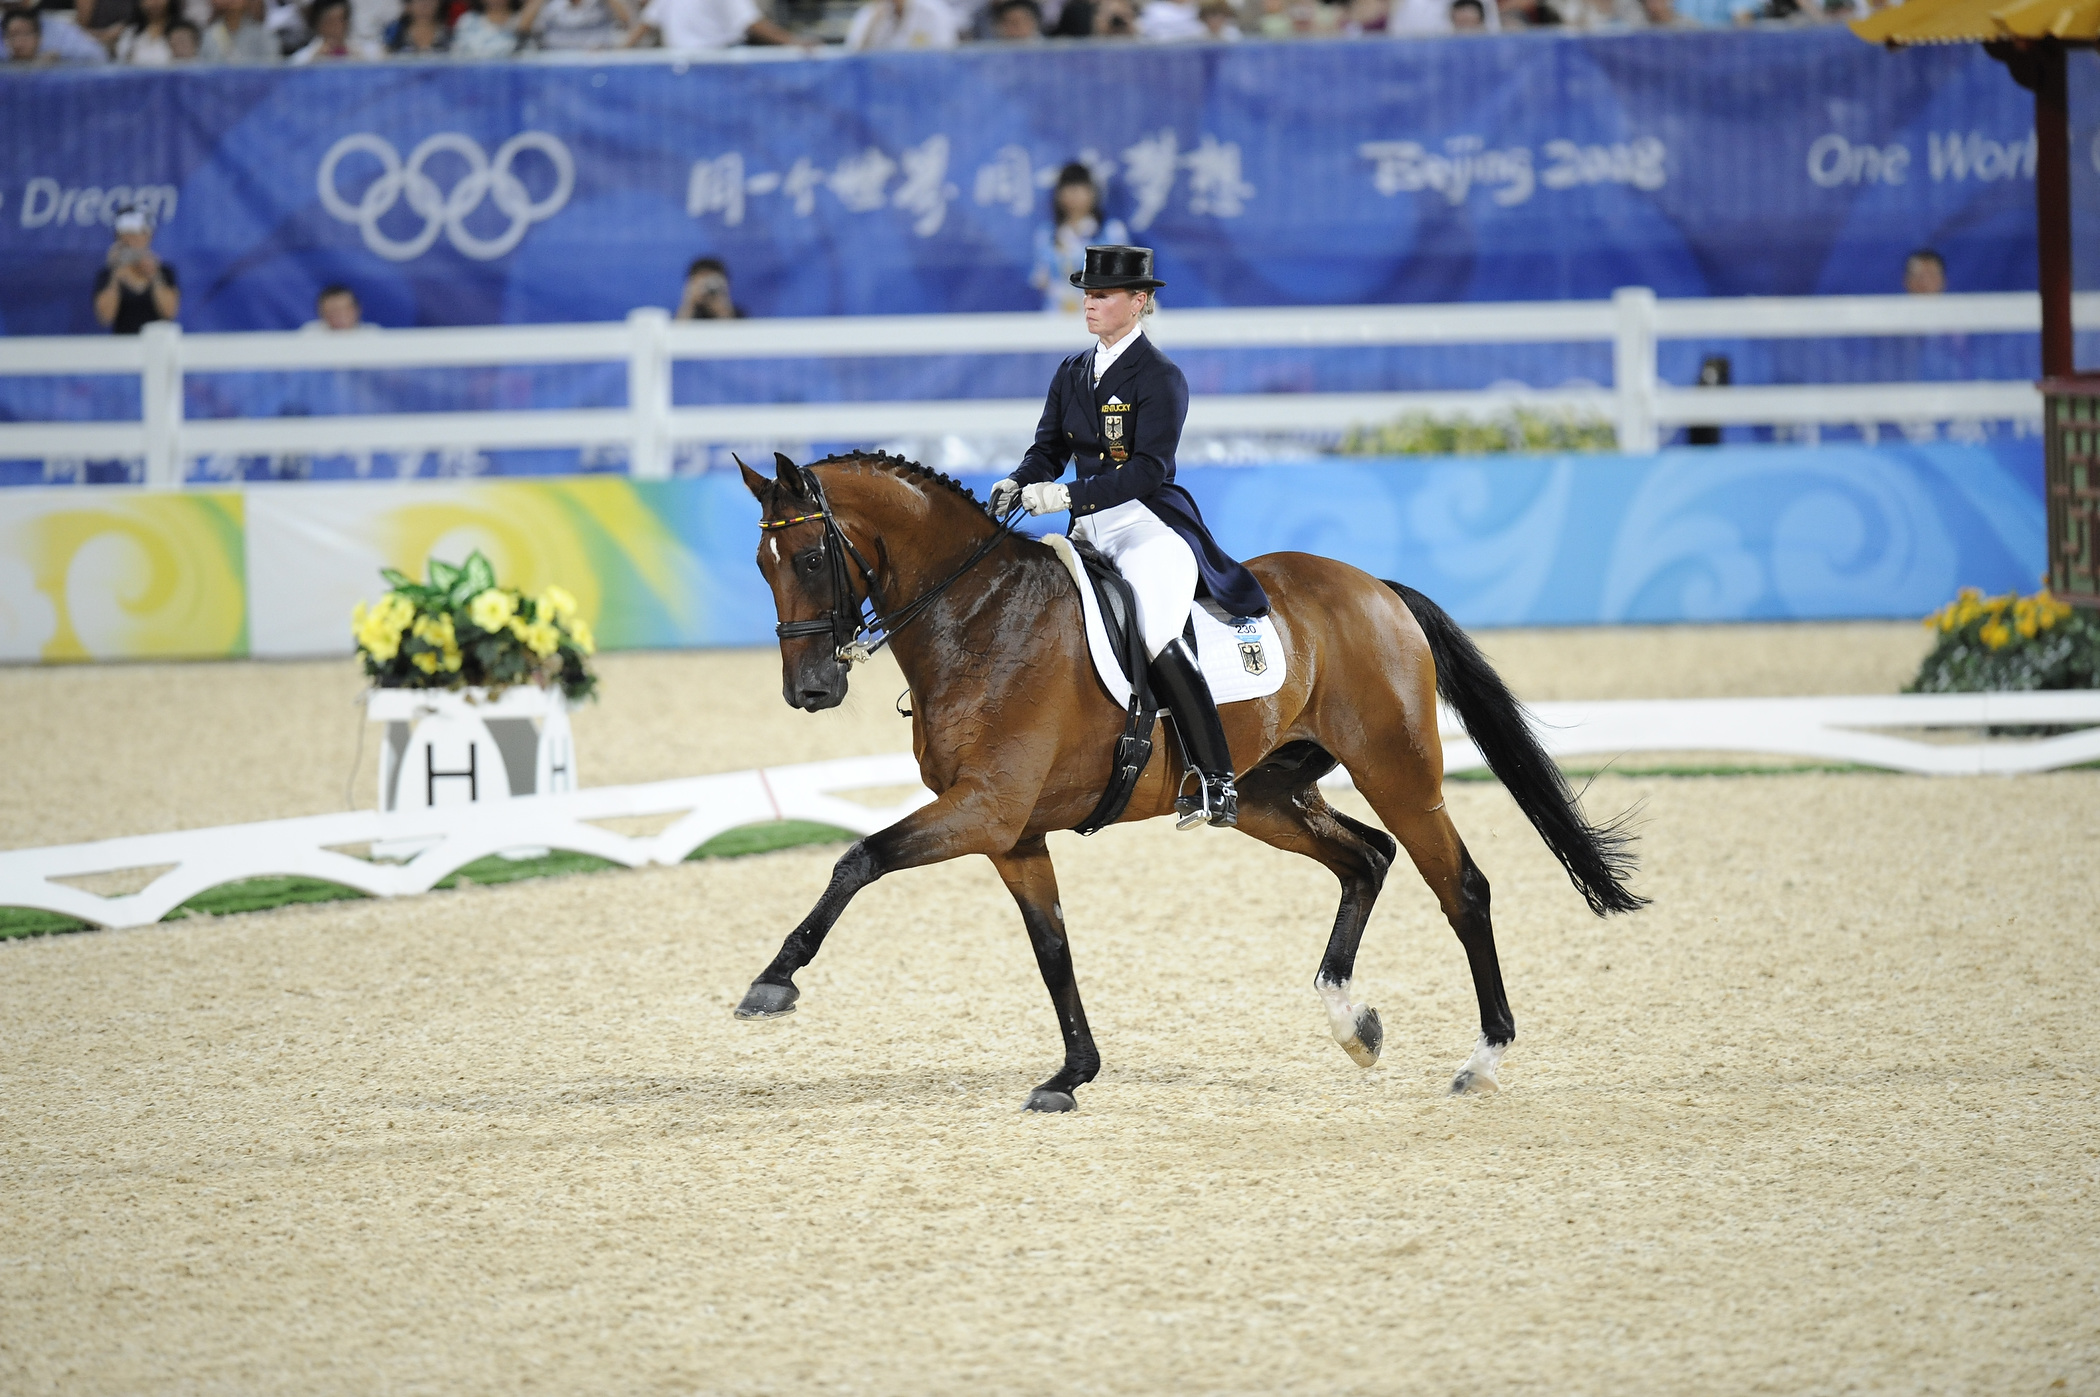 Entries for Olympic equestrian events unveiled